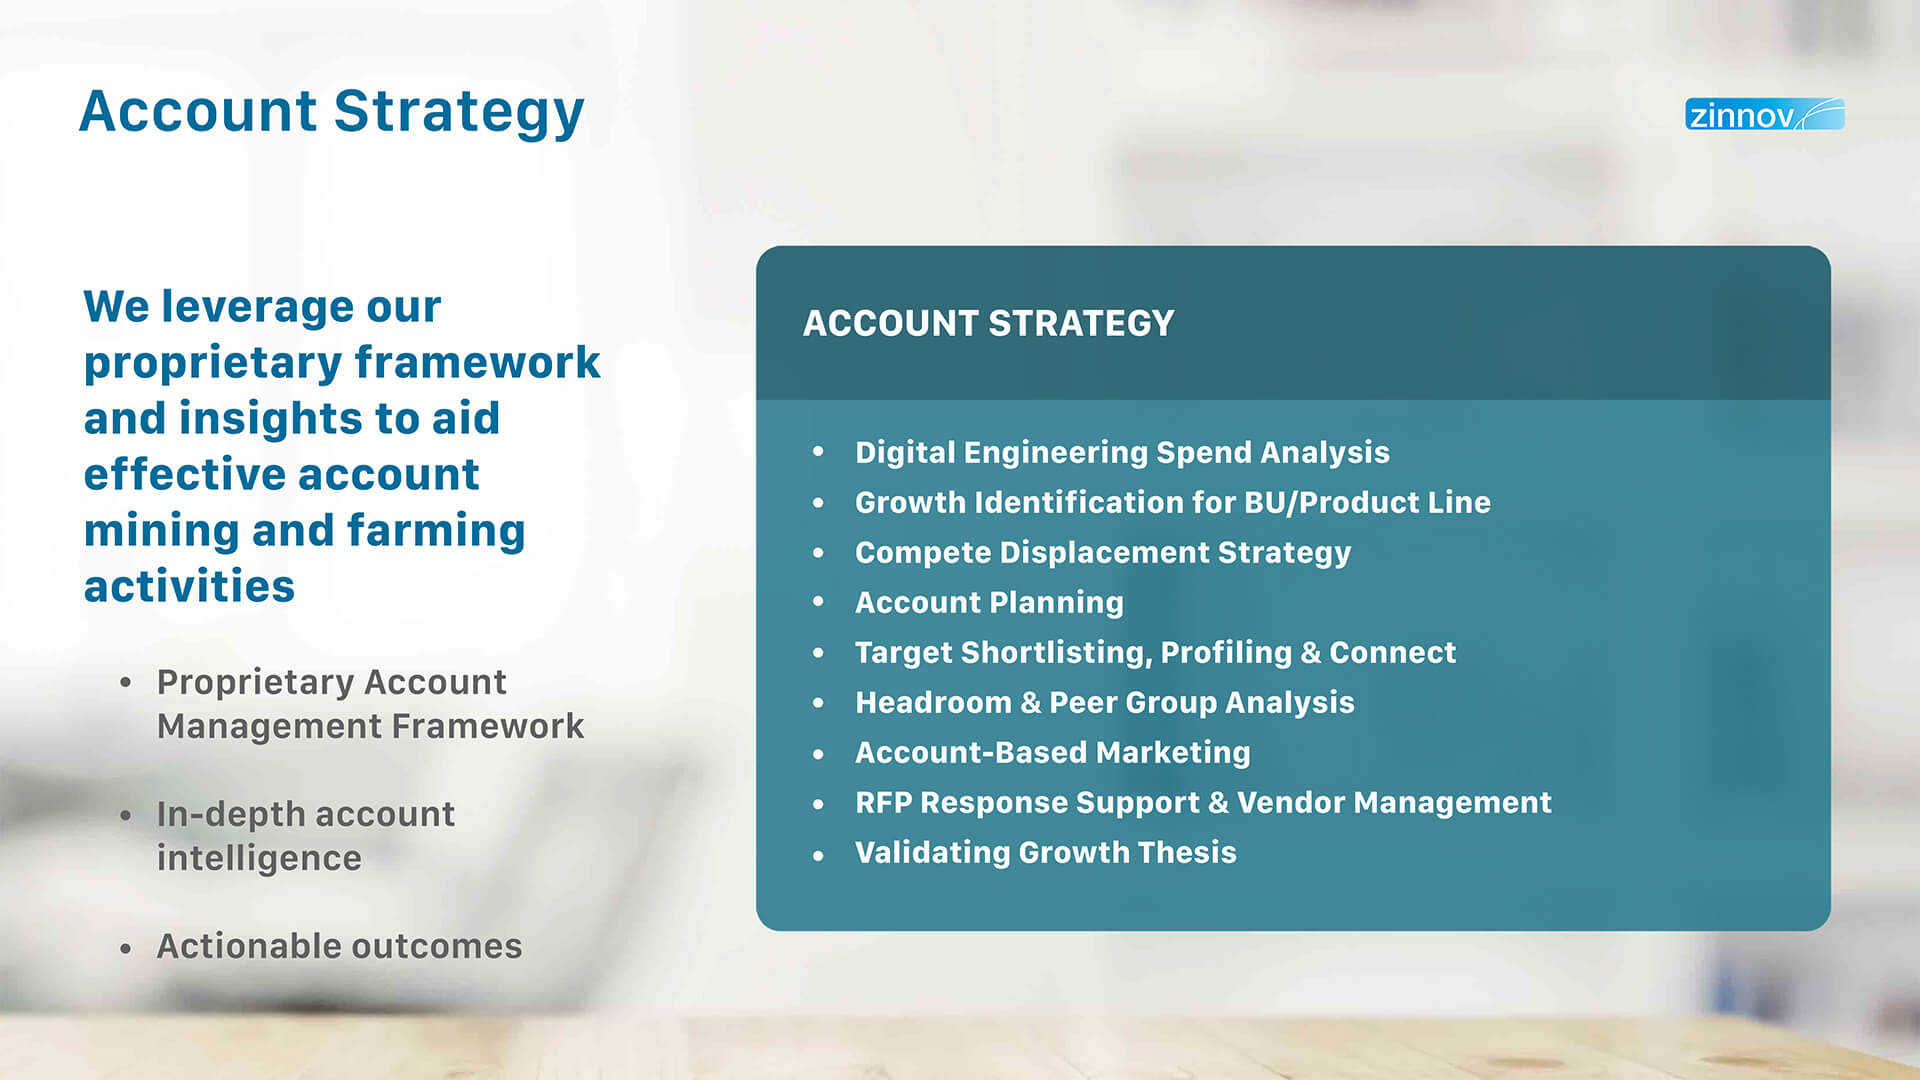 Account Strategy